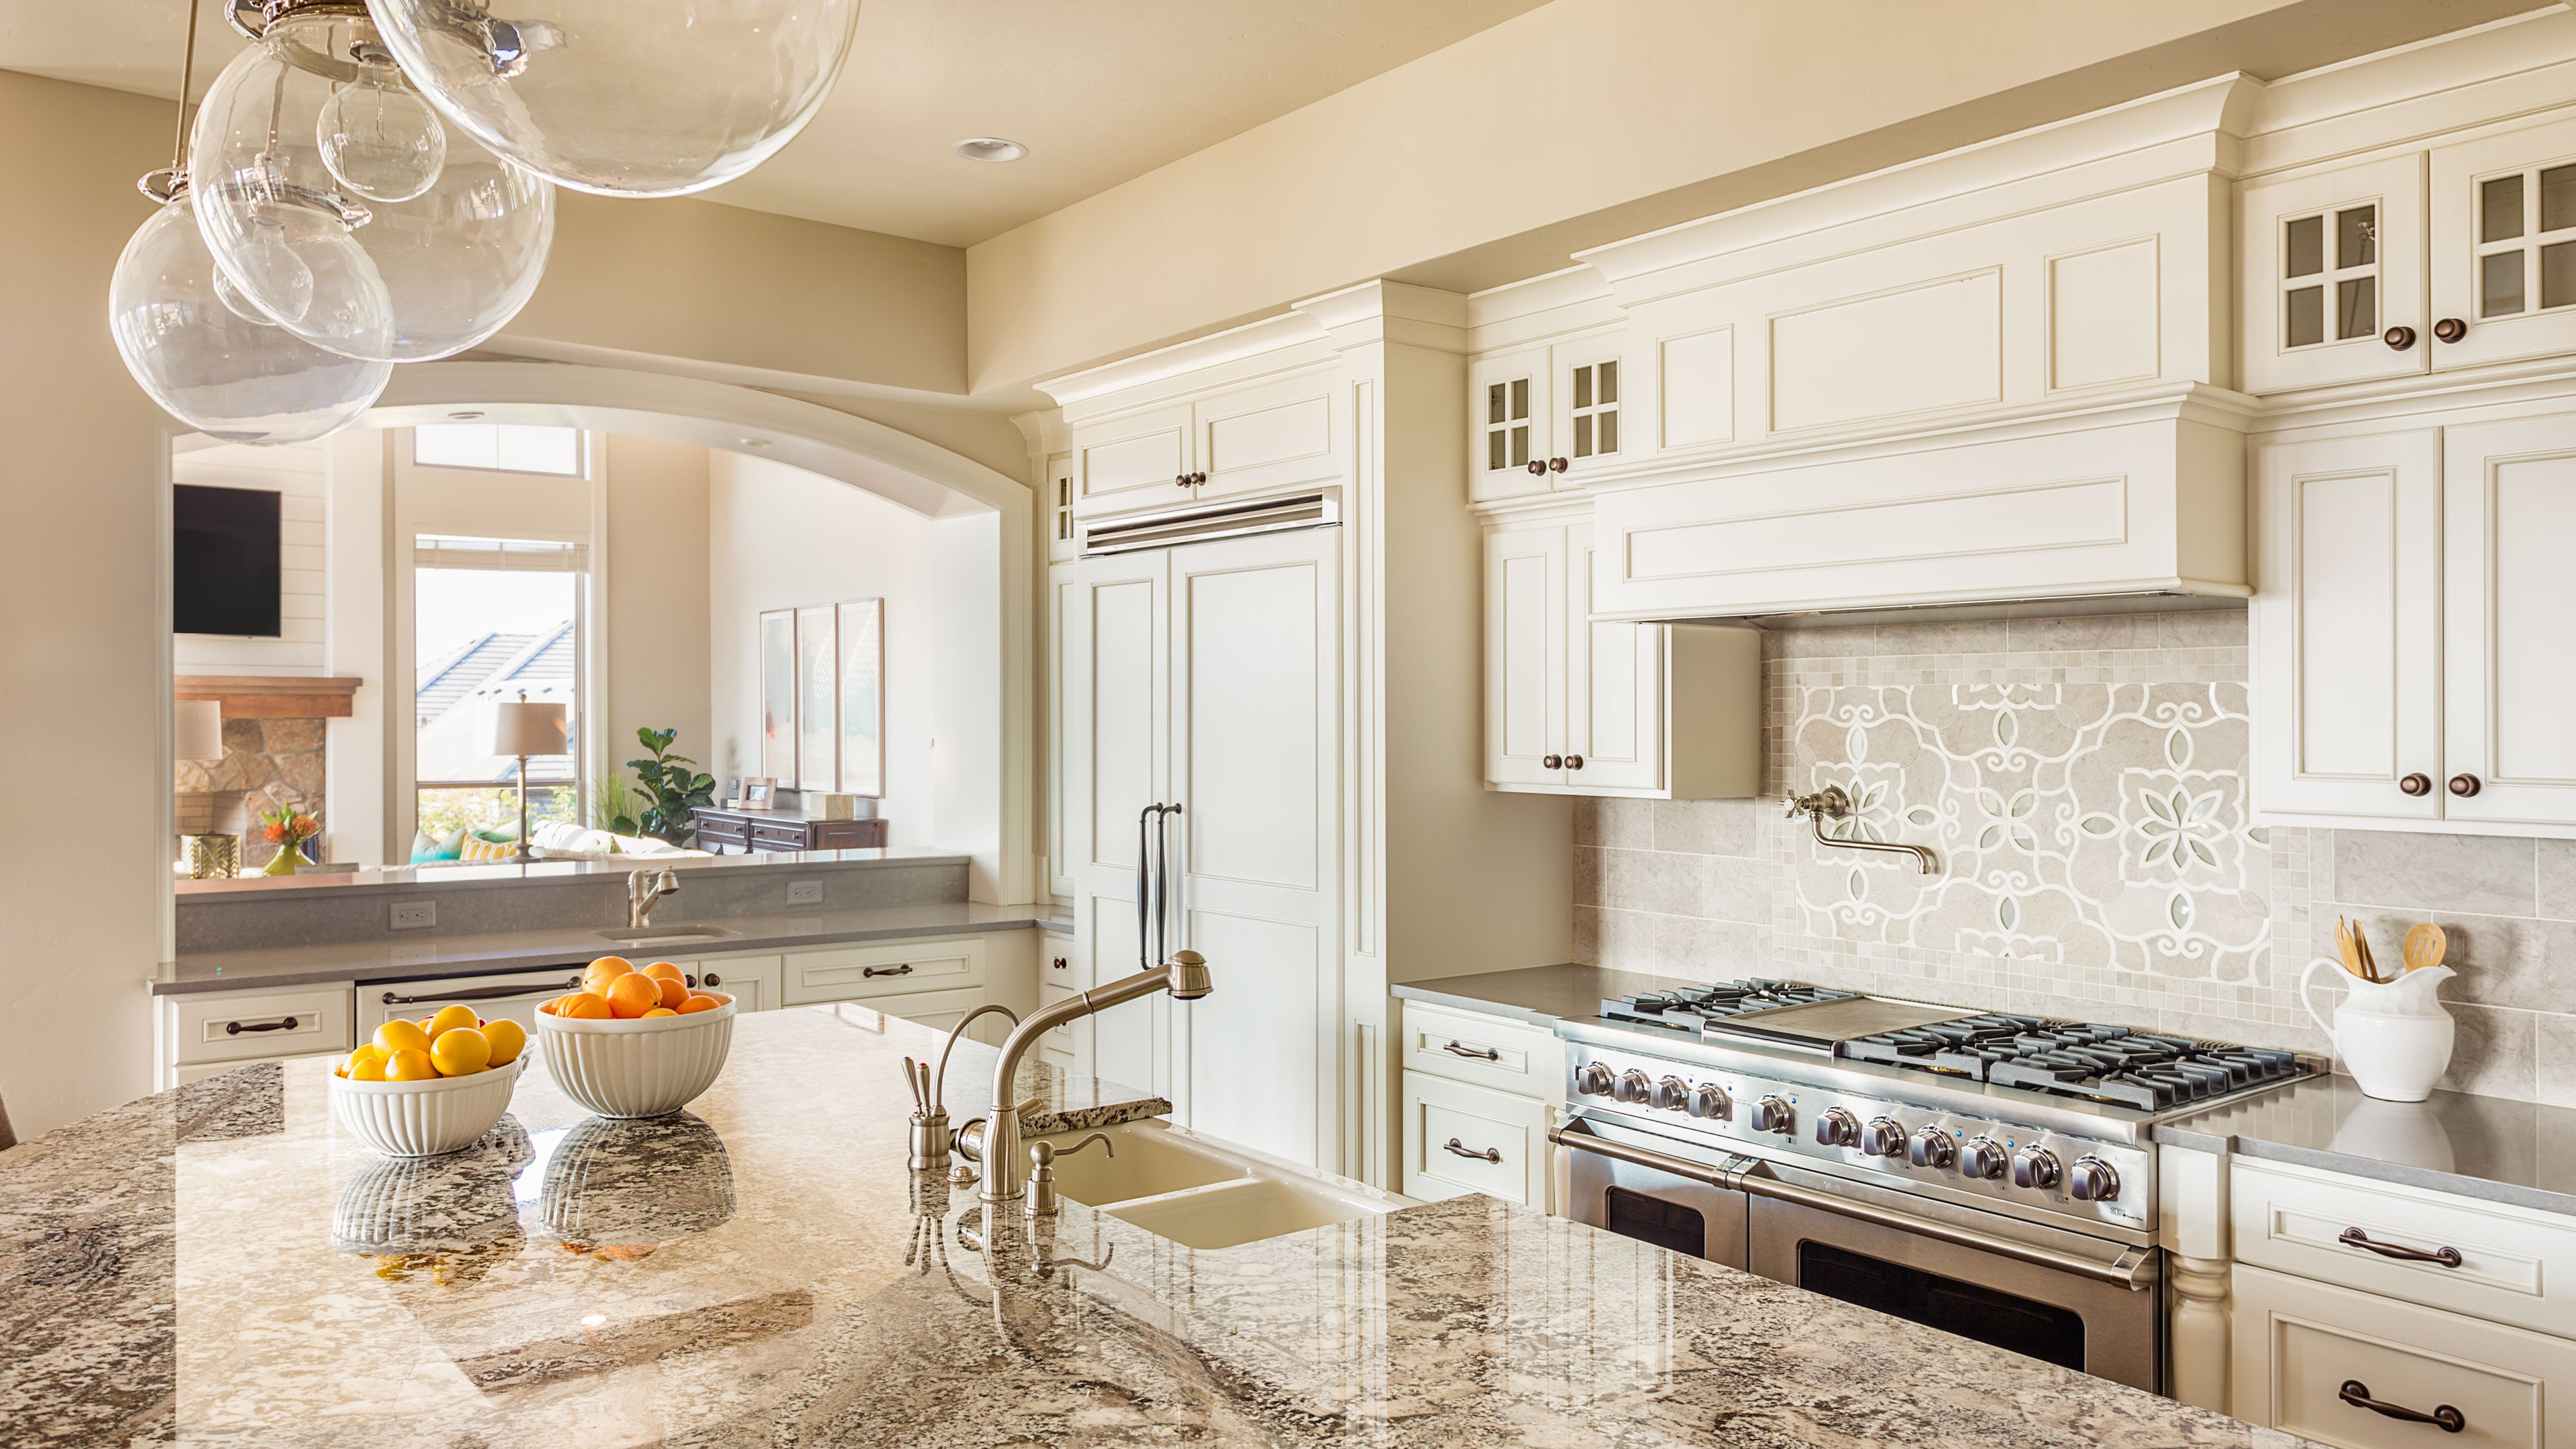 Using Cambria Quartz With Veins In Your Home